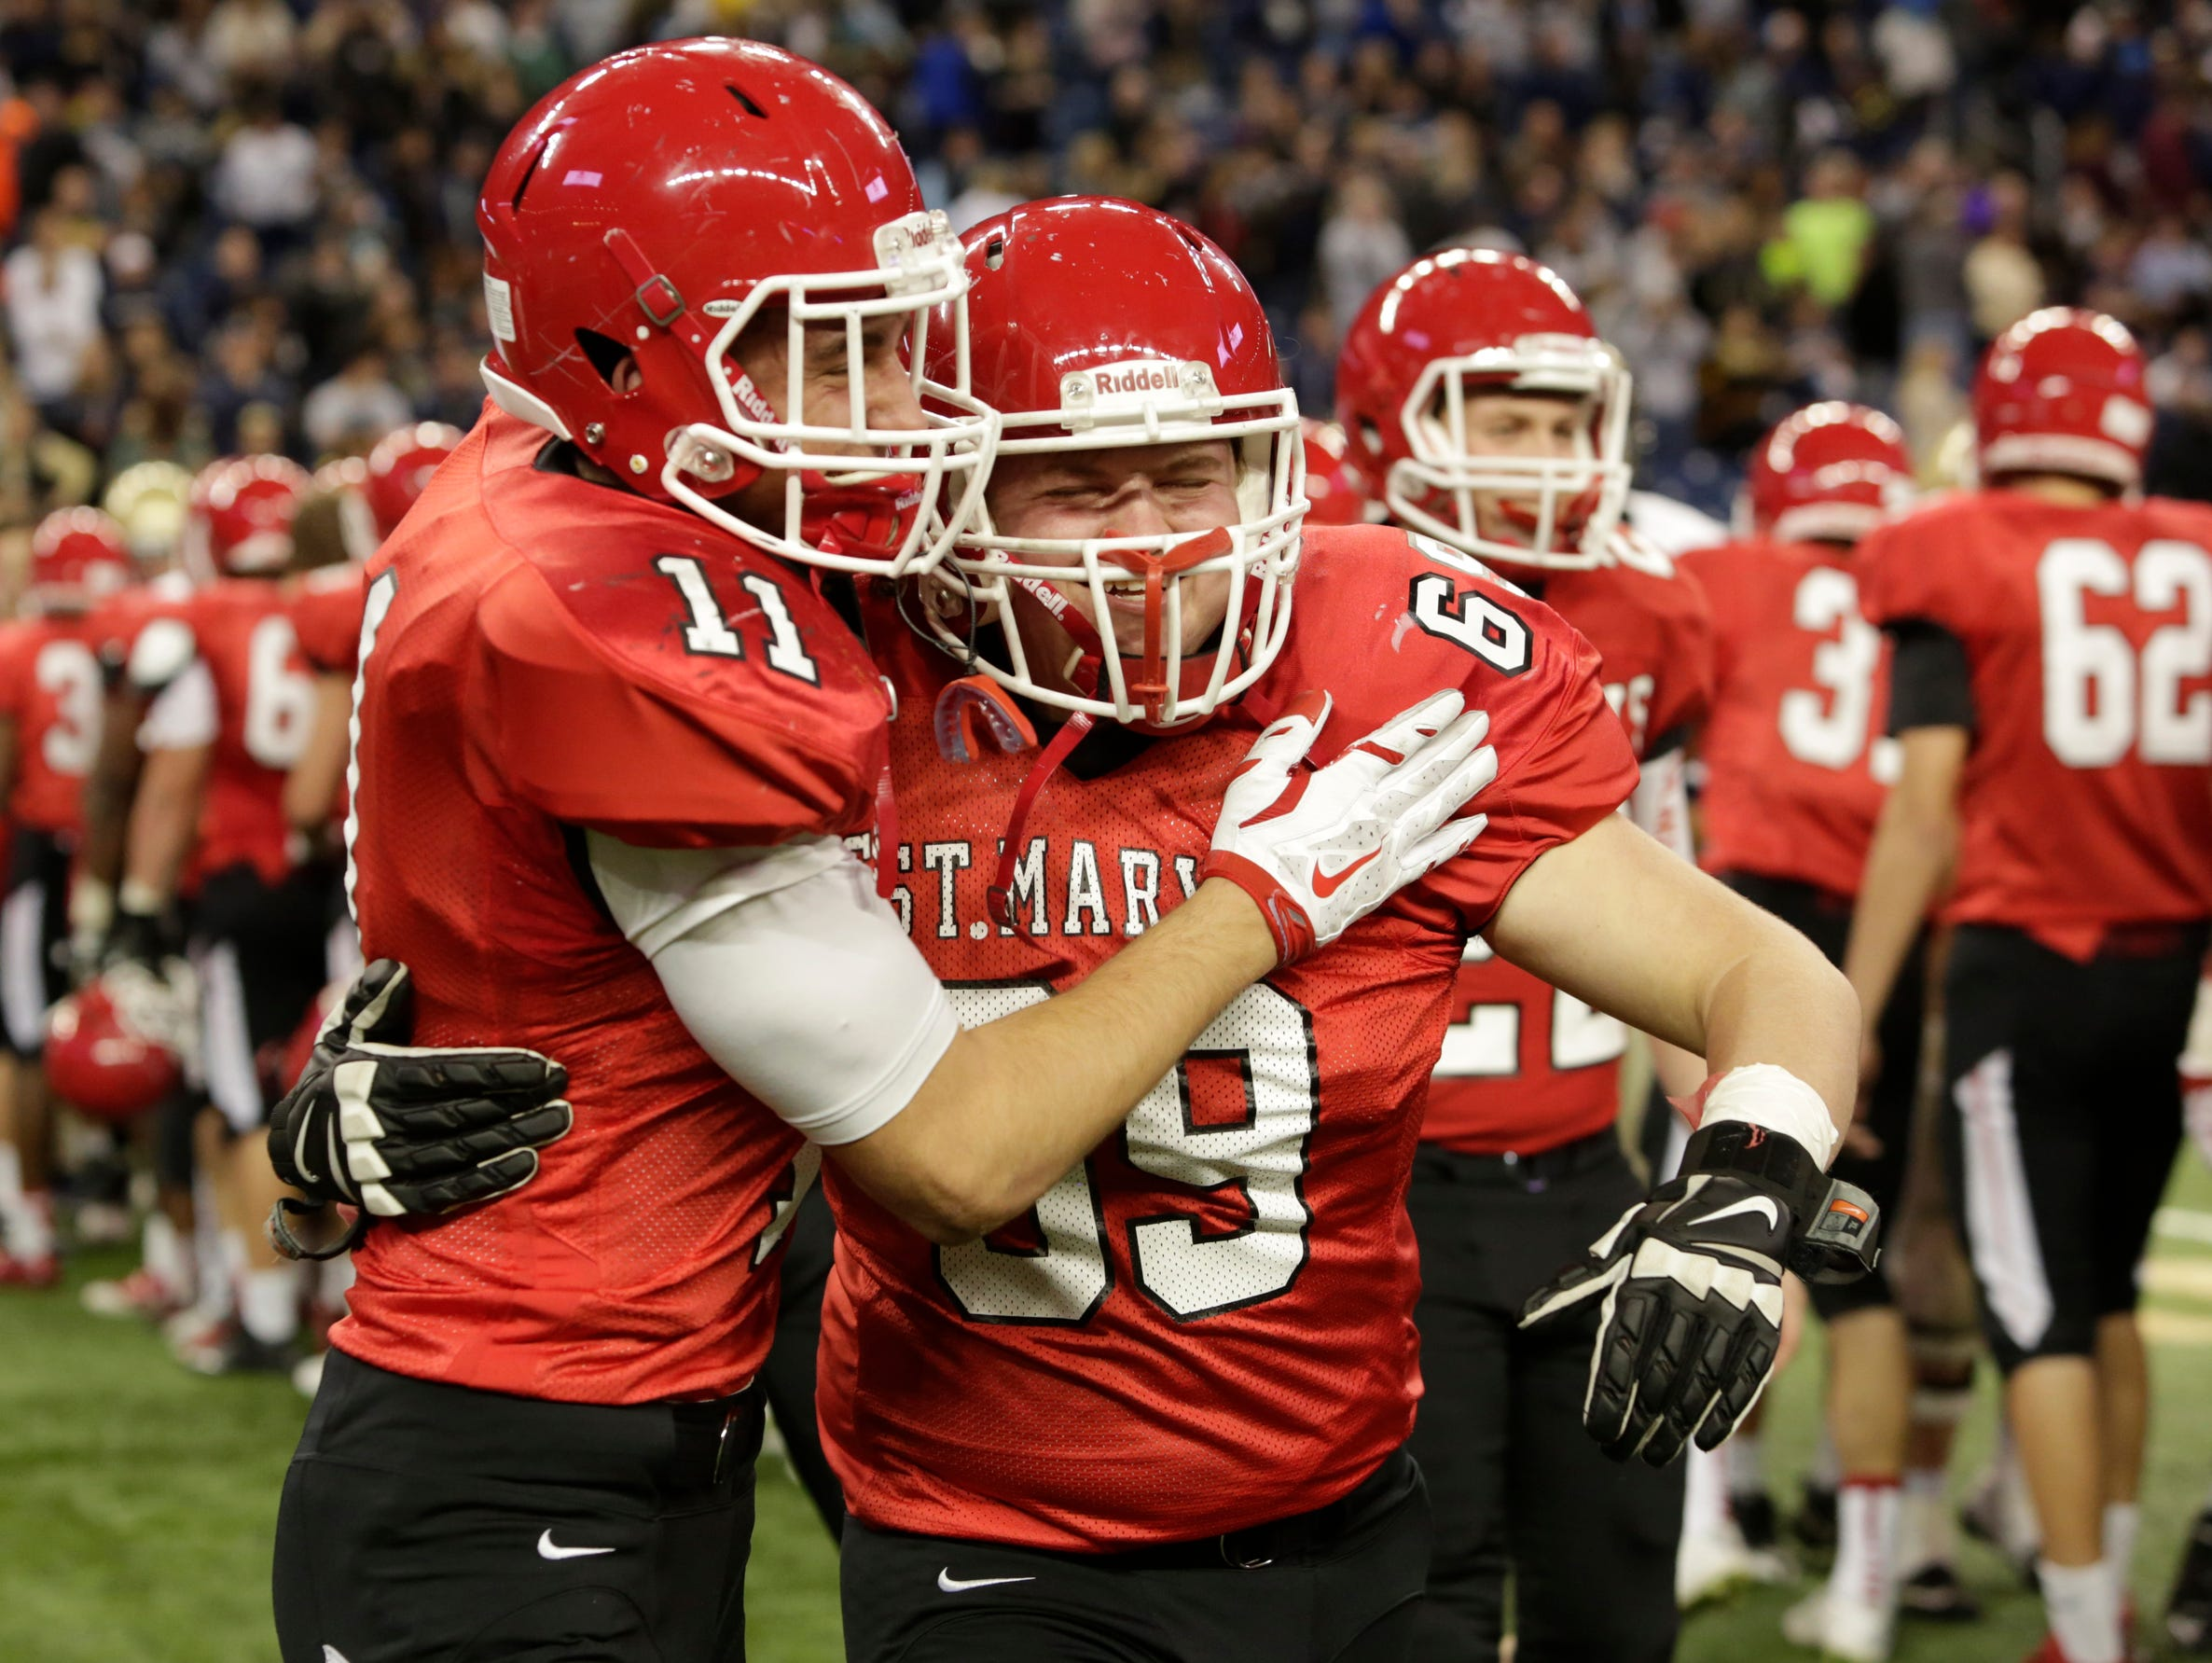 Orchard Lake St. Mary's Tyler Cochran, left, and John Mike Santoni celebrate their 29-12 victory over Chelsea in the Division 3 football title game at Ford Field on Saturday.